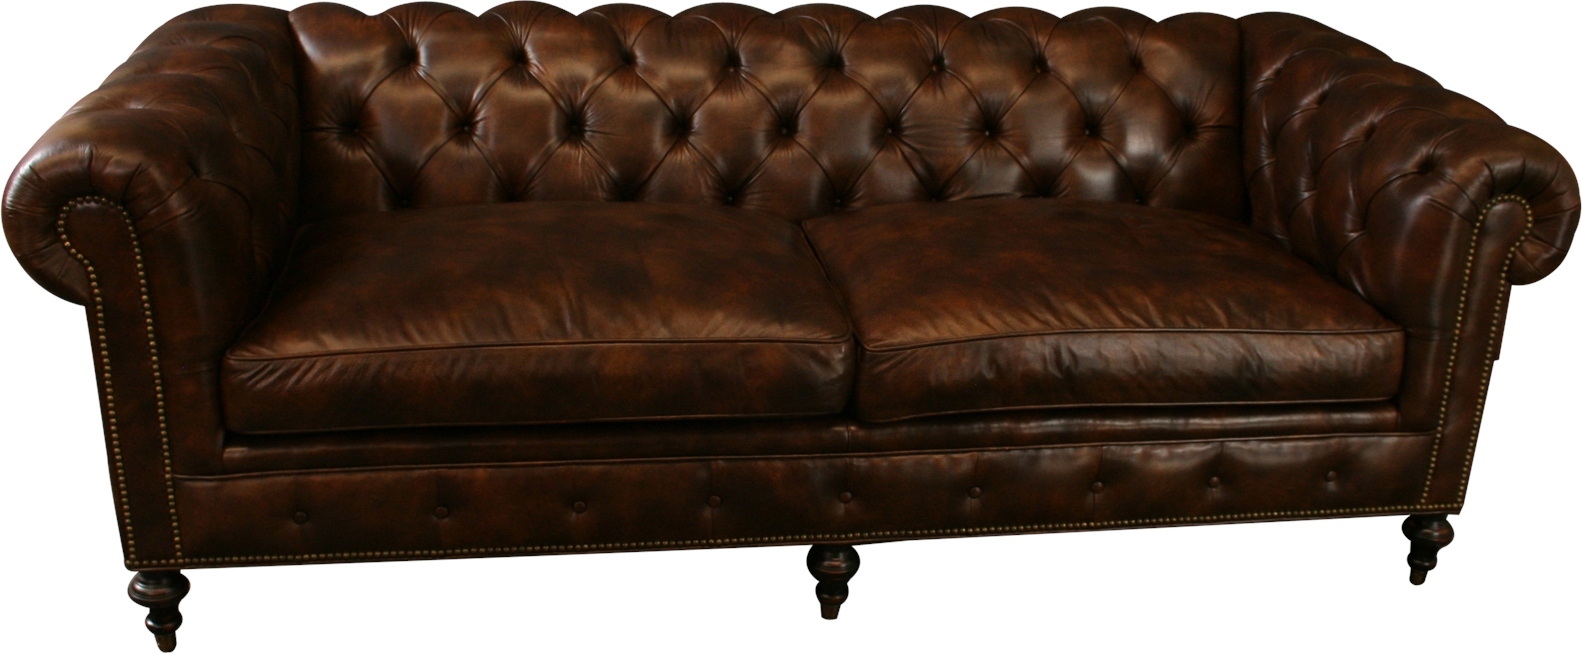 Details about NEW LEATHER CHESTERFIELD SOFA WOOD BROWN TOP GRAIN LEATHER  NAILHEAD TRIM